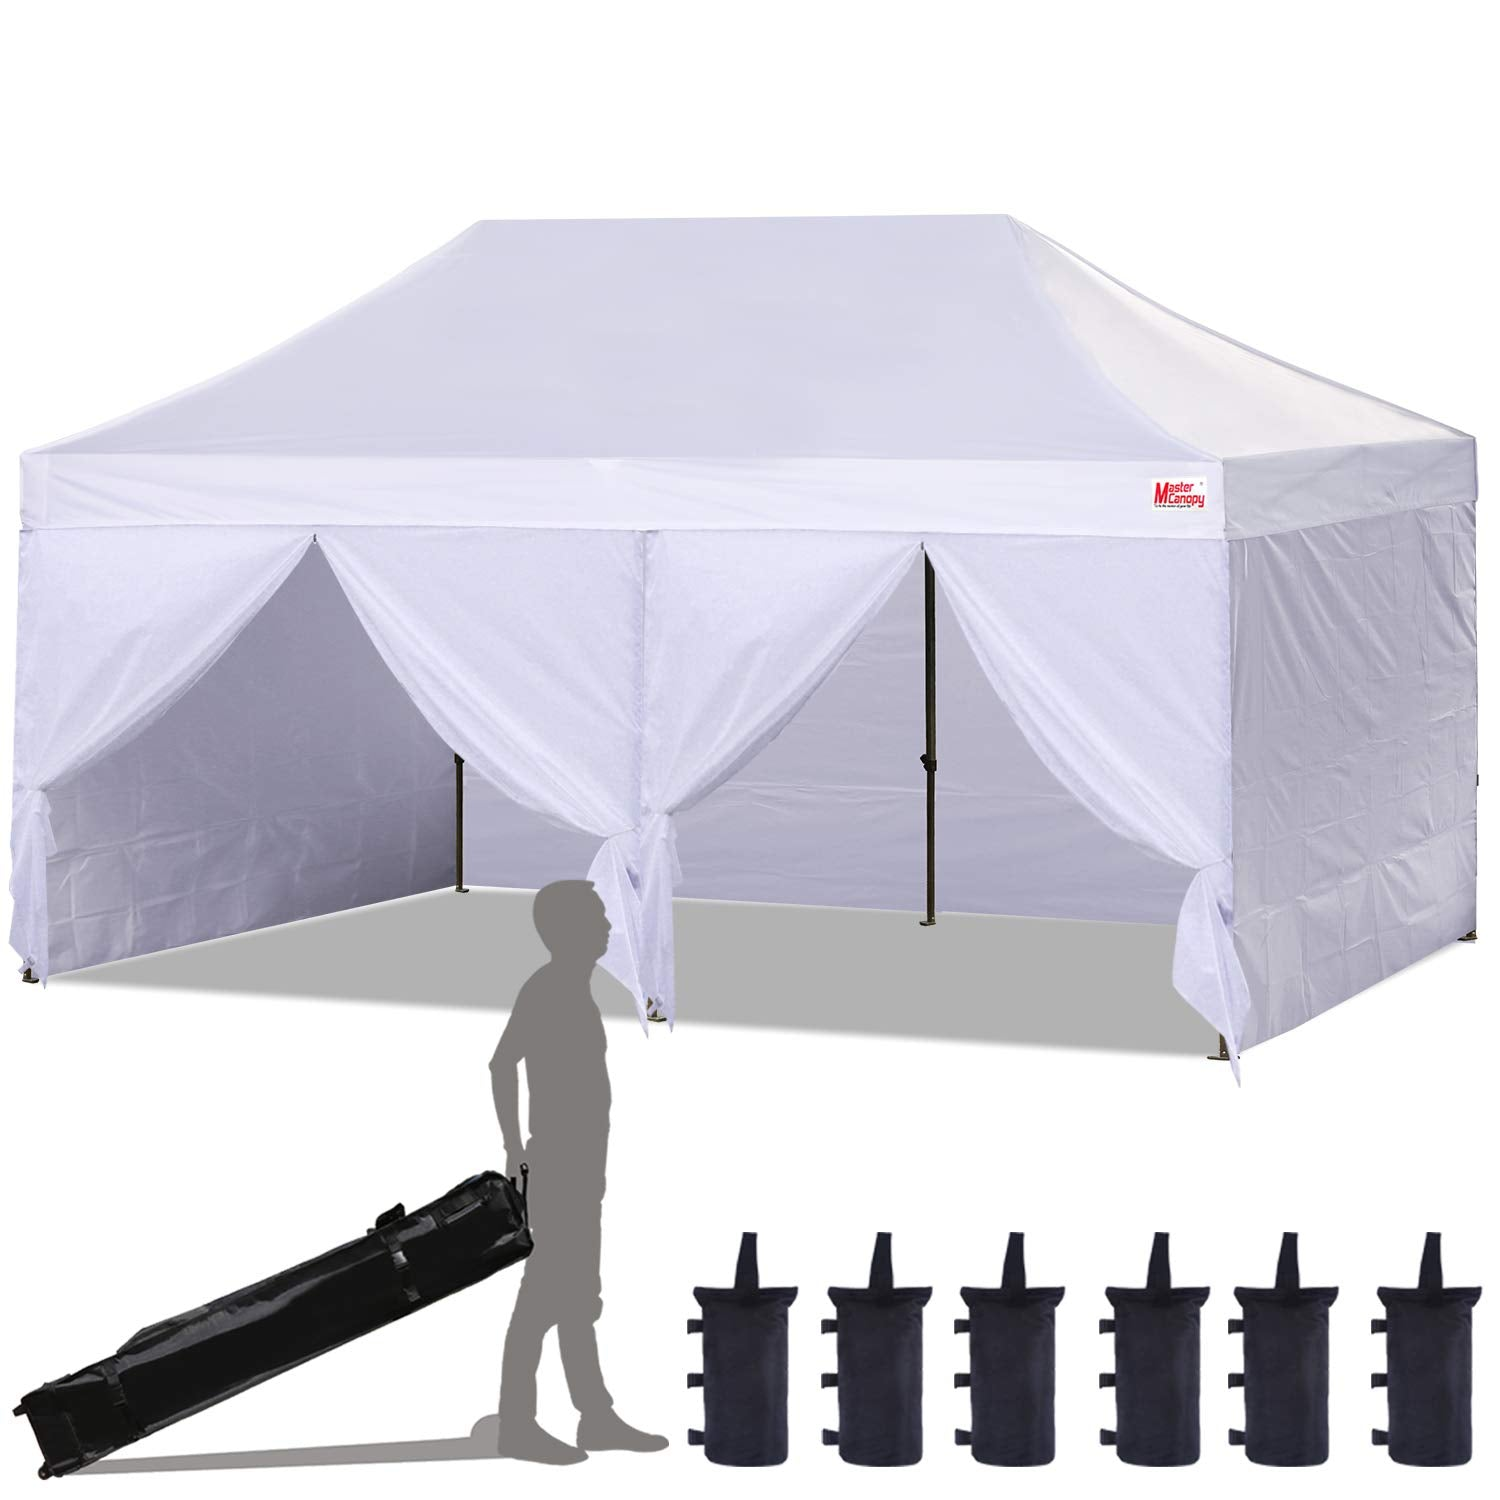 MasterCanopy Ez Pop-up Canopy Tent 10x20 Commercial Instant Canopies with 4 Removable Side Walls 2 Door Wall and Roller Bag, Bonus 6 SandBags (10x20 Feet, White)